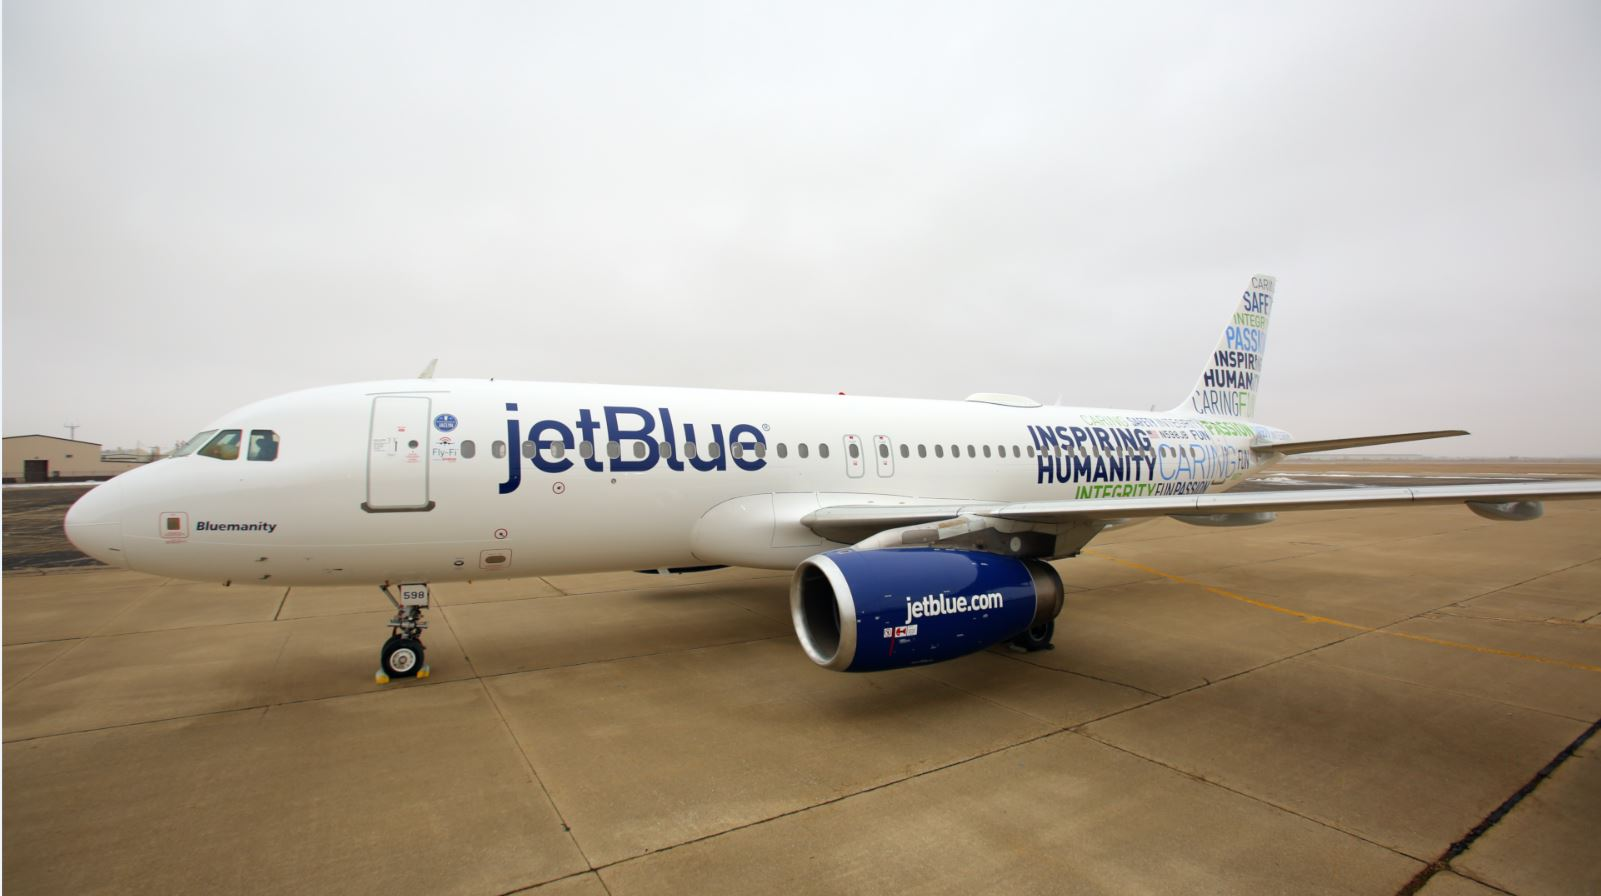 Jetblue Marks 15th Birthday With Blumanity Paint Job Airlines